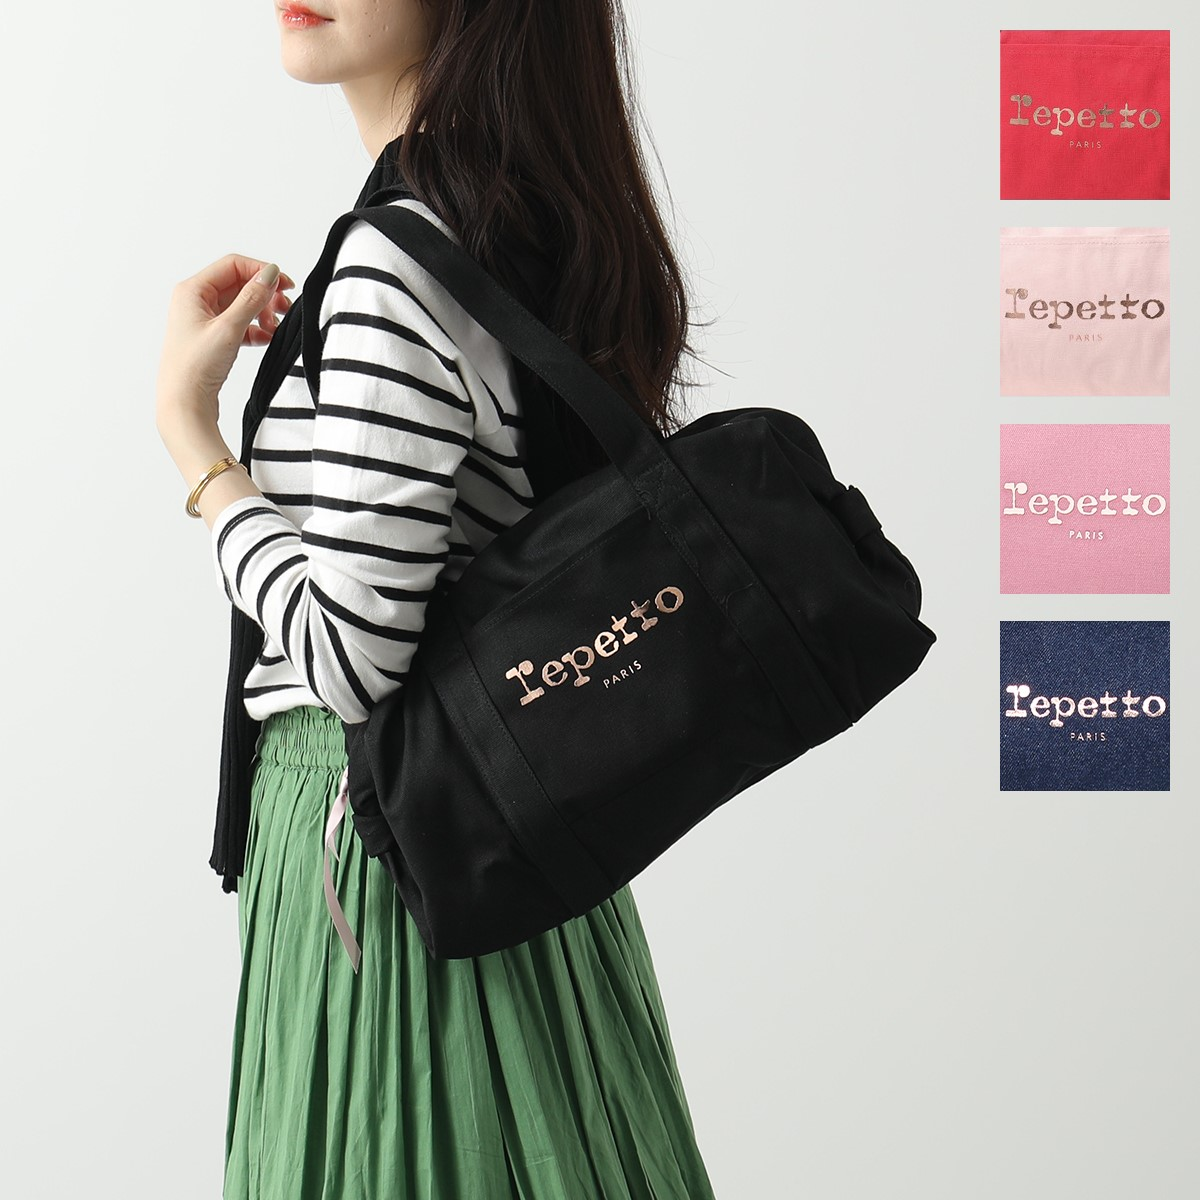 repetto レペット B0232T Cotton Duffle bag Size M プリント ロゴ ミディアム ダッフルバッグ ハンドバッグ ジムバッグ 鞄 3色 レディース